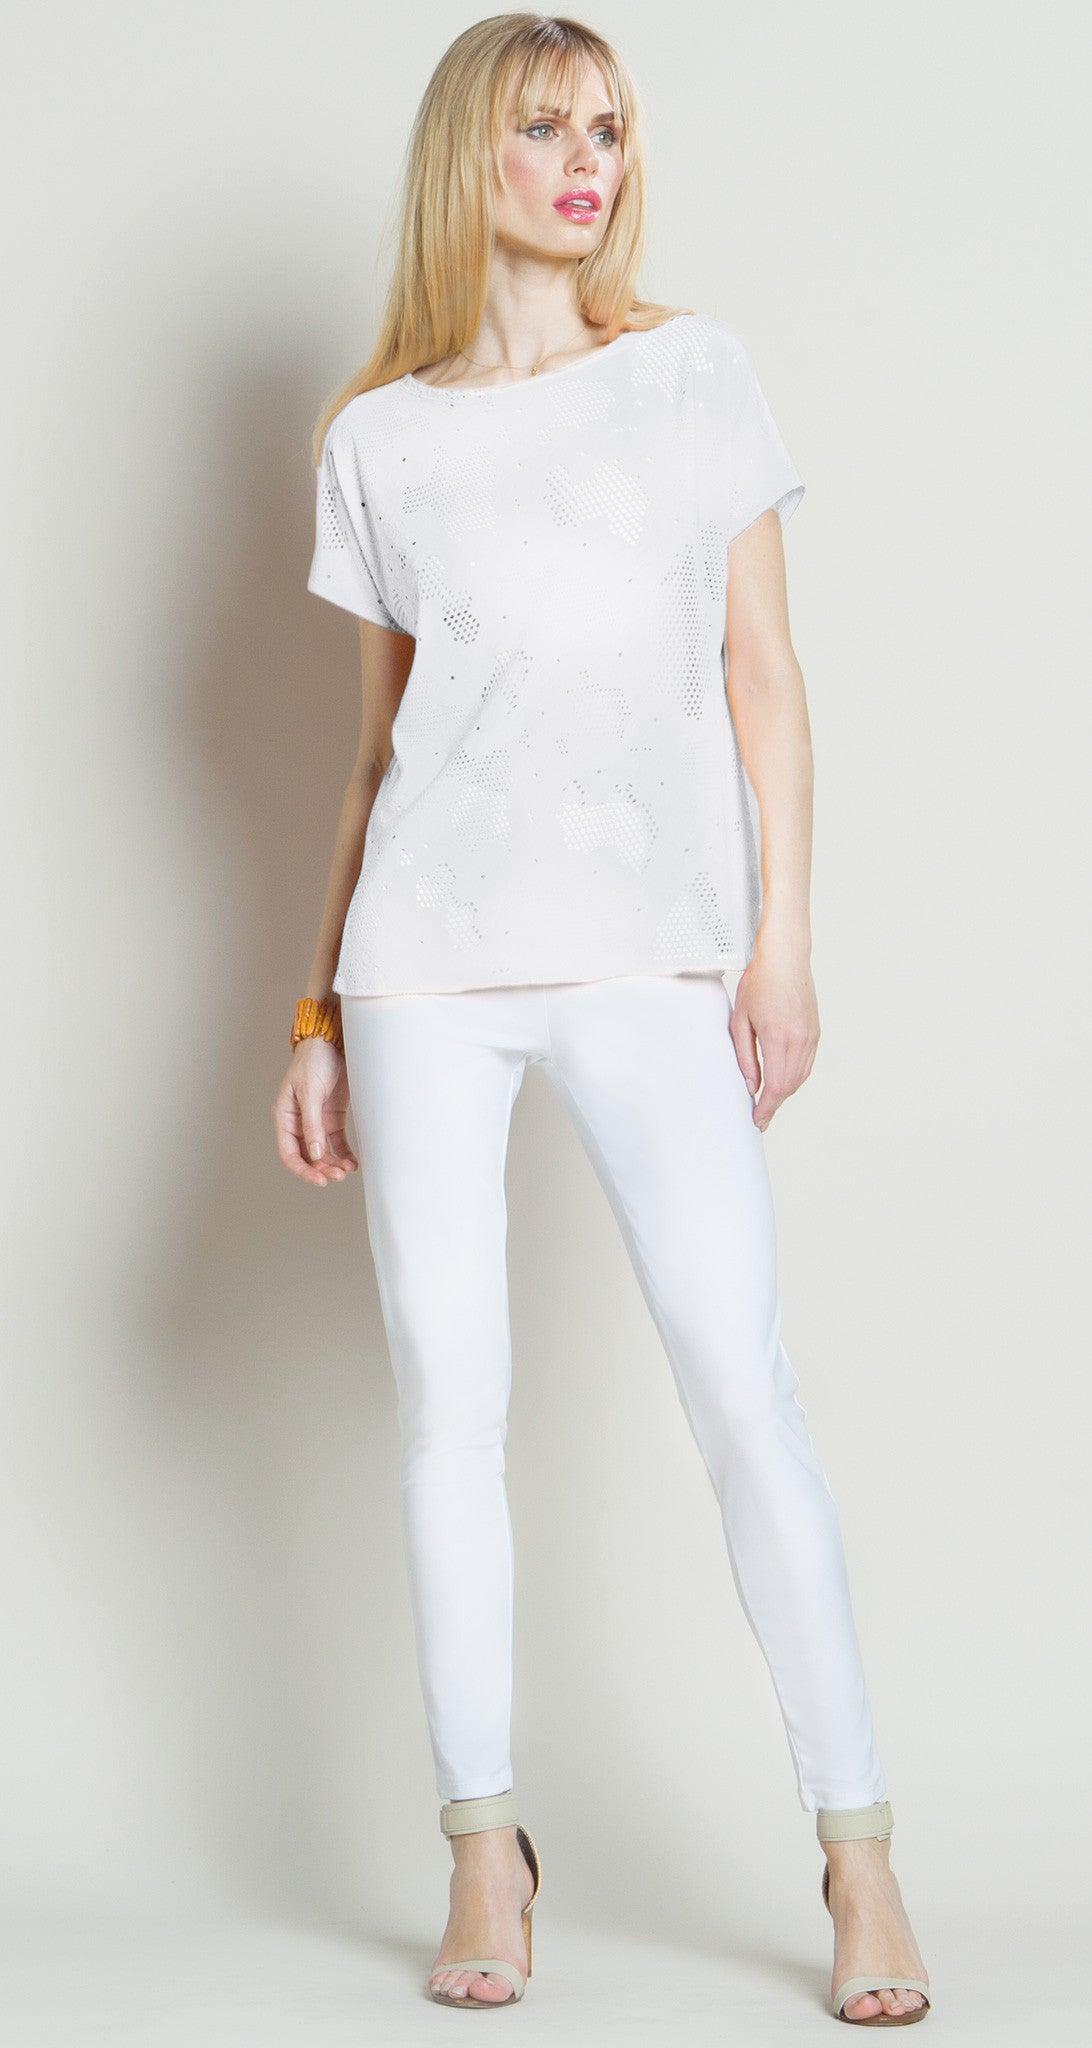 Eyelet Butter Soft Top White - Final Sale!